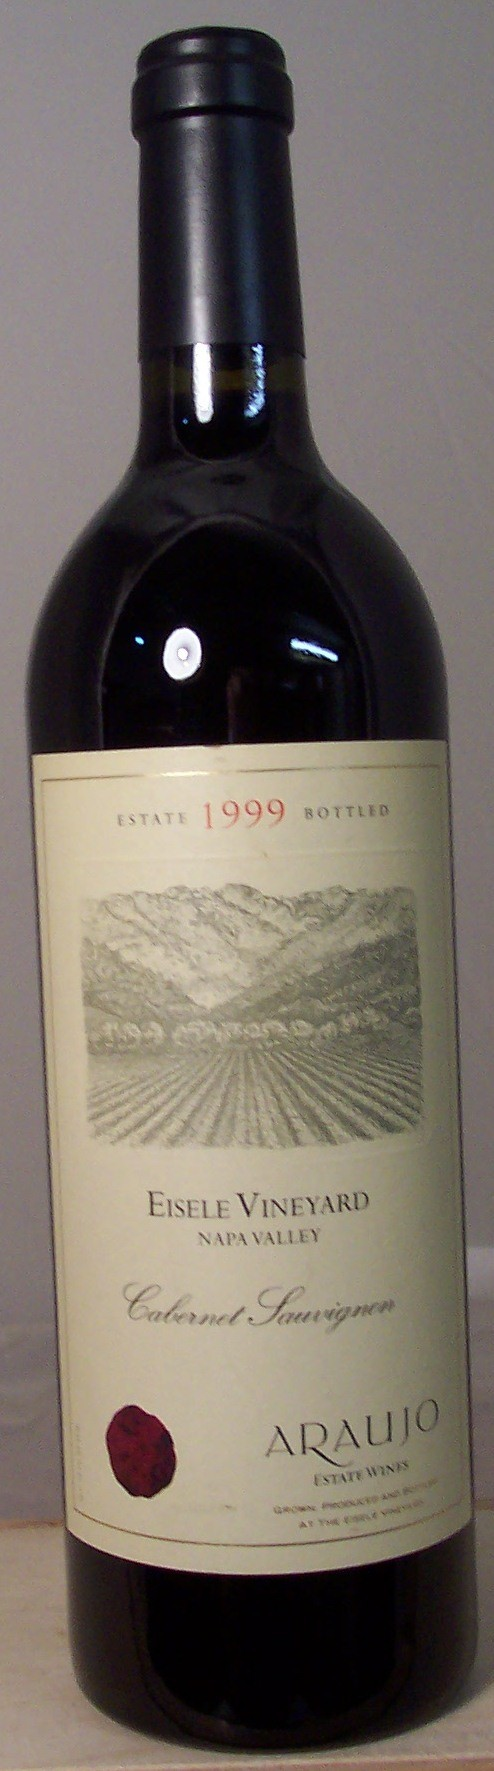 Araujo Estate Wines Cabernet Sauvignon Eisele Vineyard Napa Valley 1999